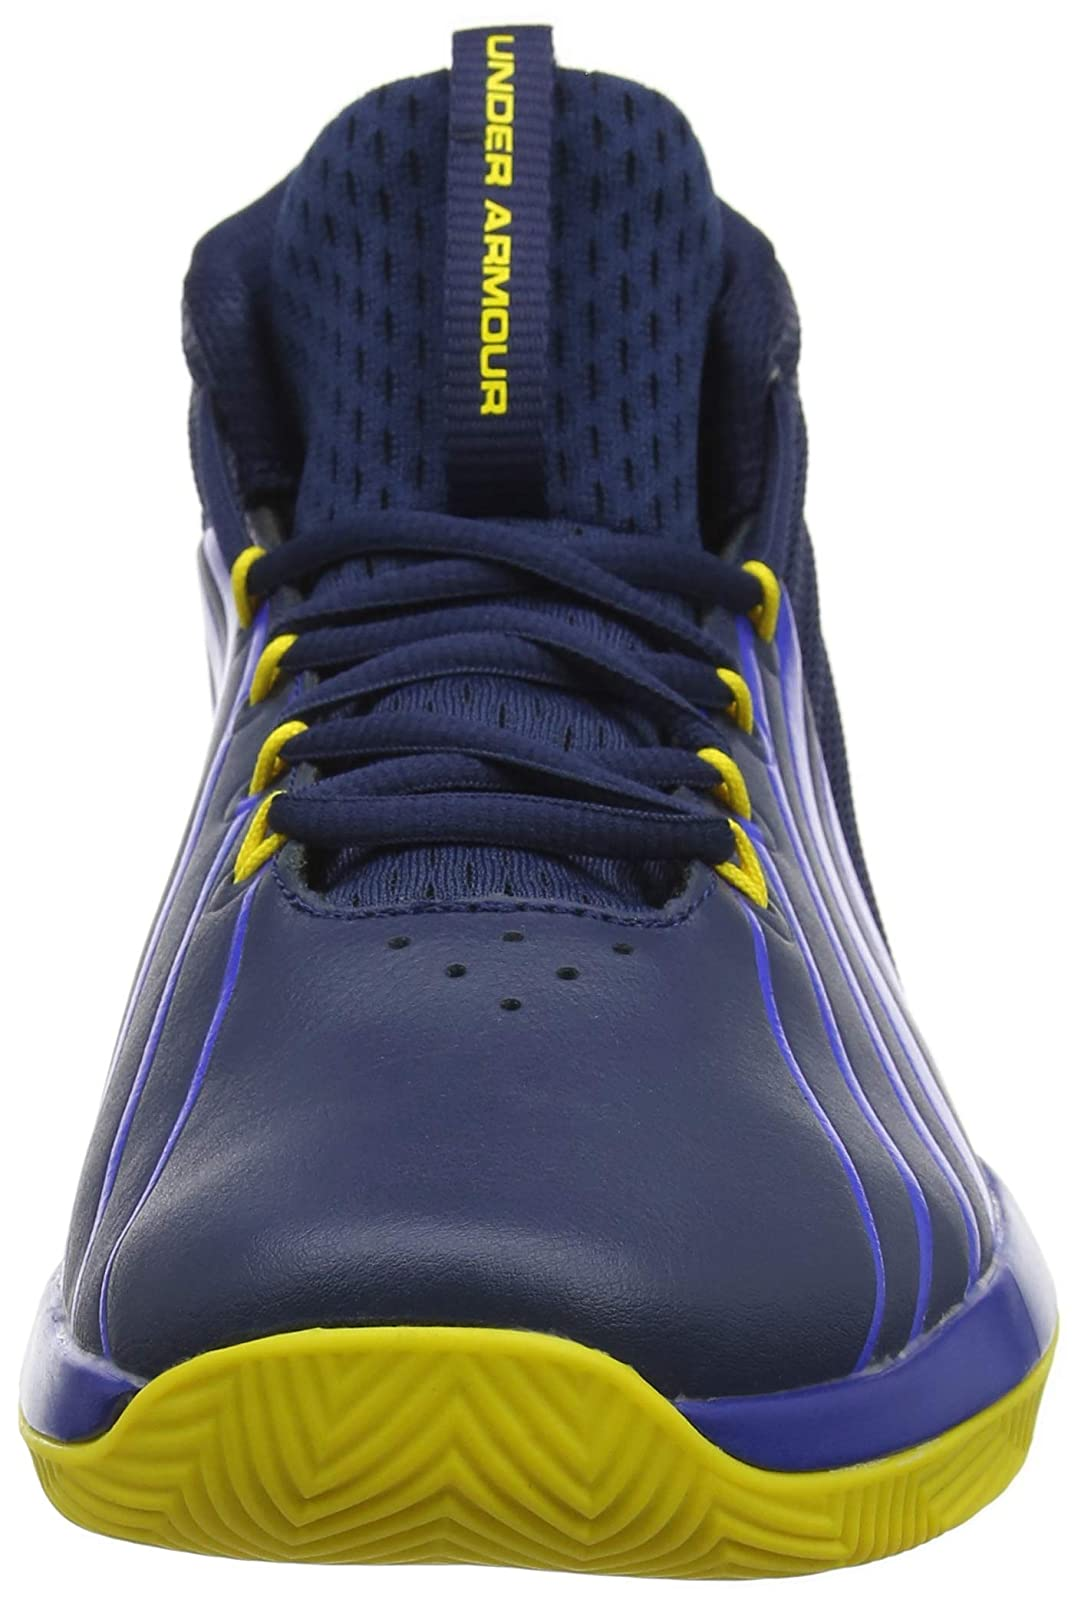 Under Armour Men's Launch Basketball Shoe 3020622 Academy (400)/Royal - 4